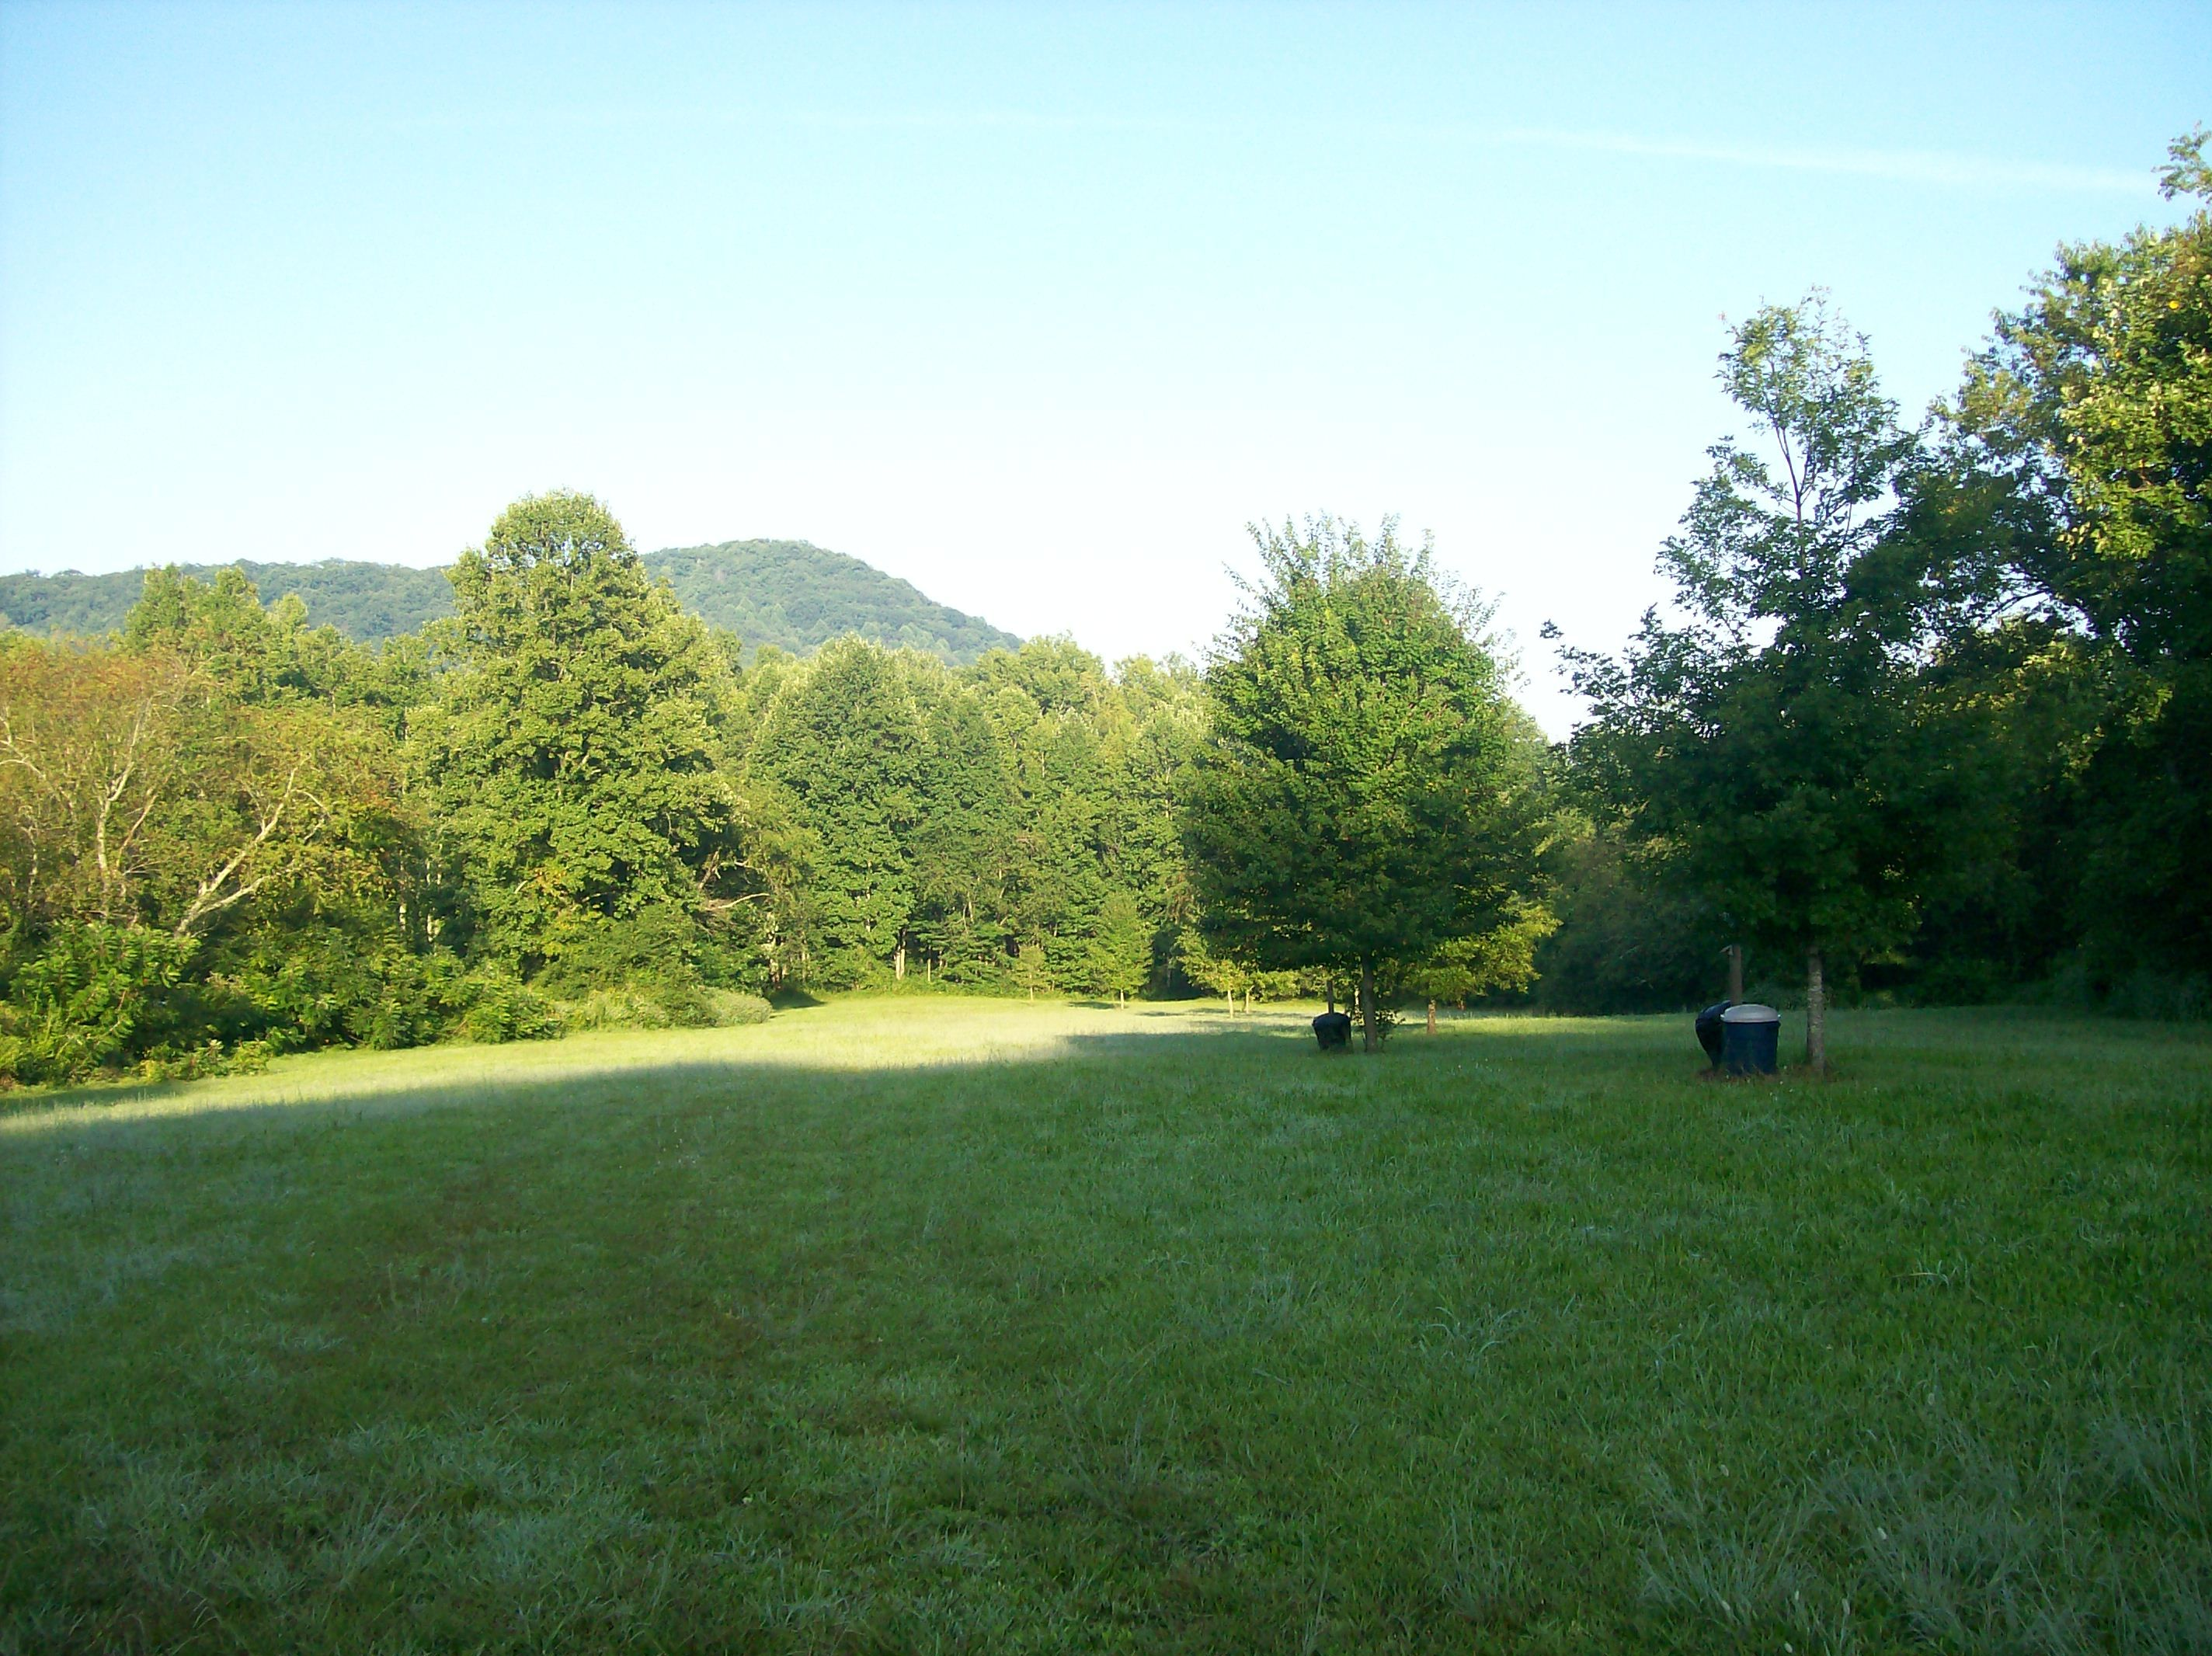 Our primitive camping area is 3 acres and provides awesome views of the surrounding mountains during the day and at night unparalleled star gazing.  It also backs up to one of our 3 creeks that provide a sound that truly wipes away the stress.